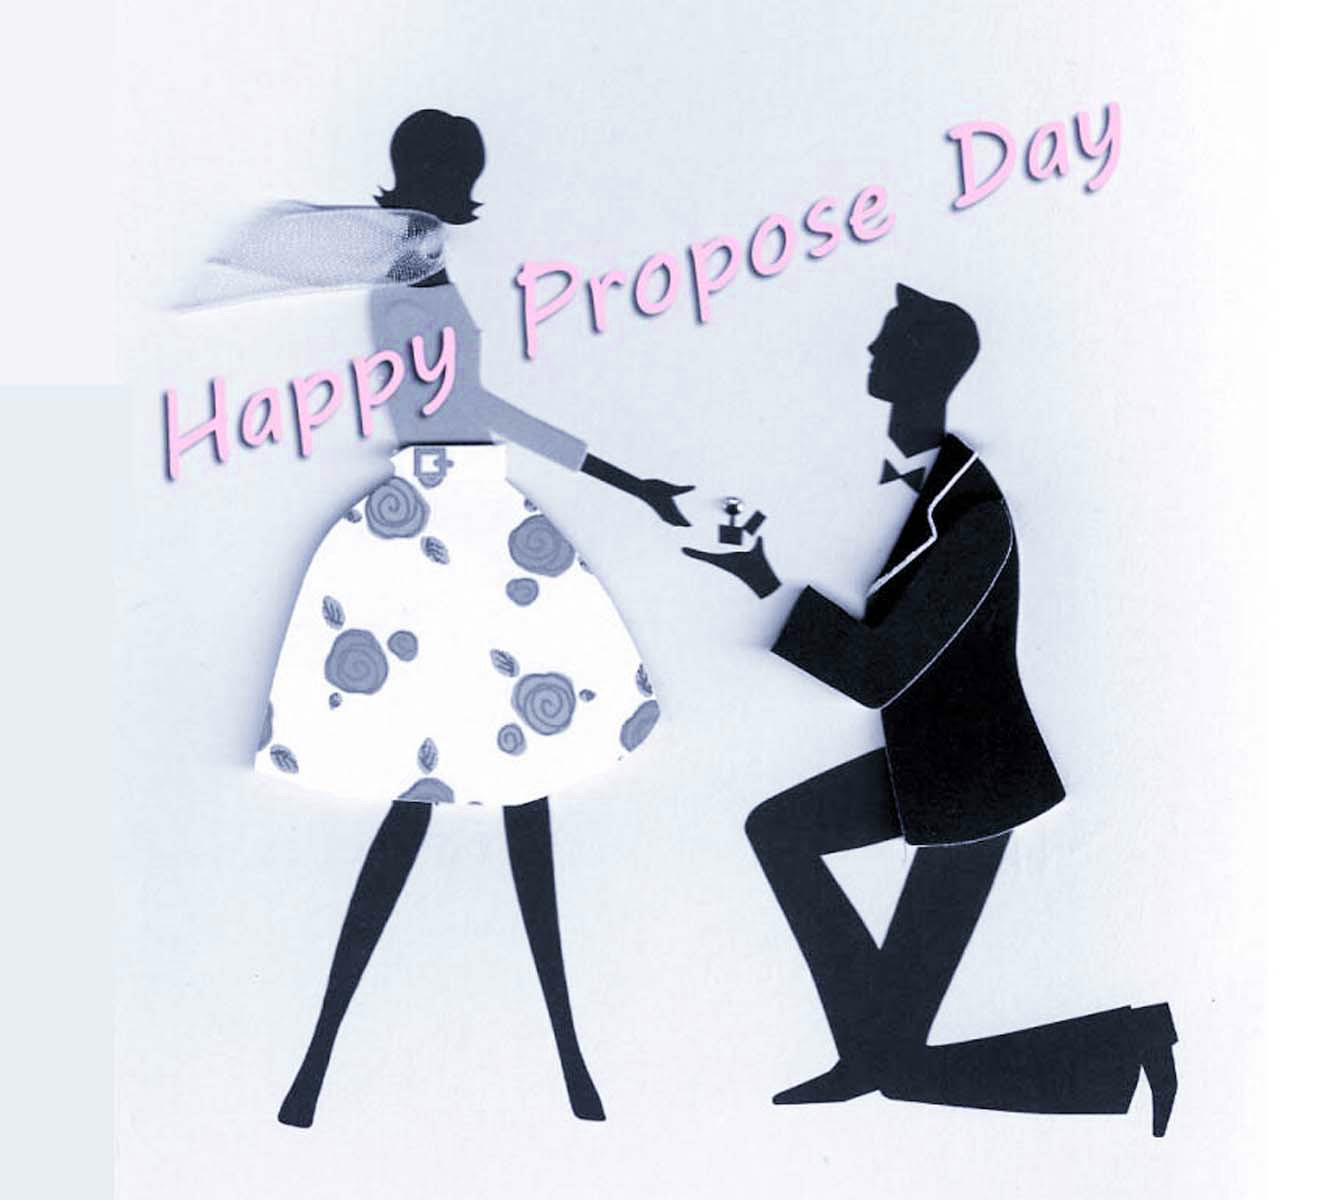 Propose Day Images Wallpaper Photo Pics